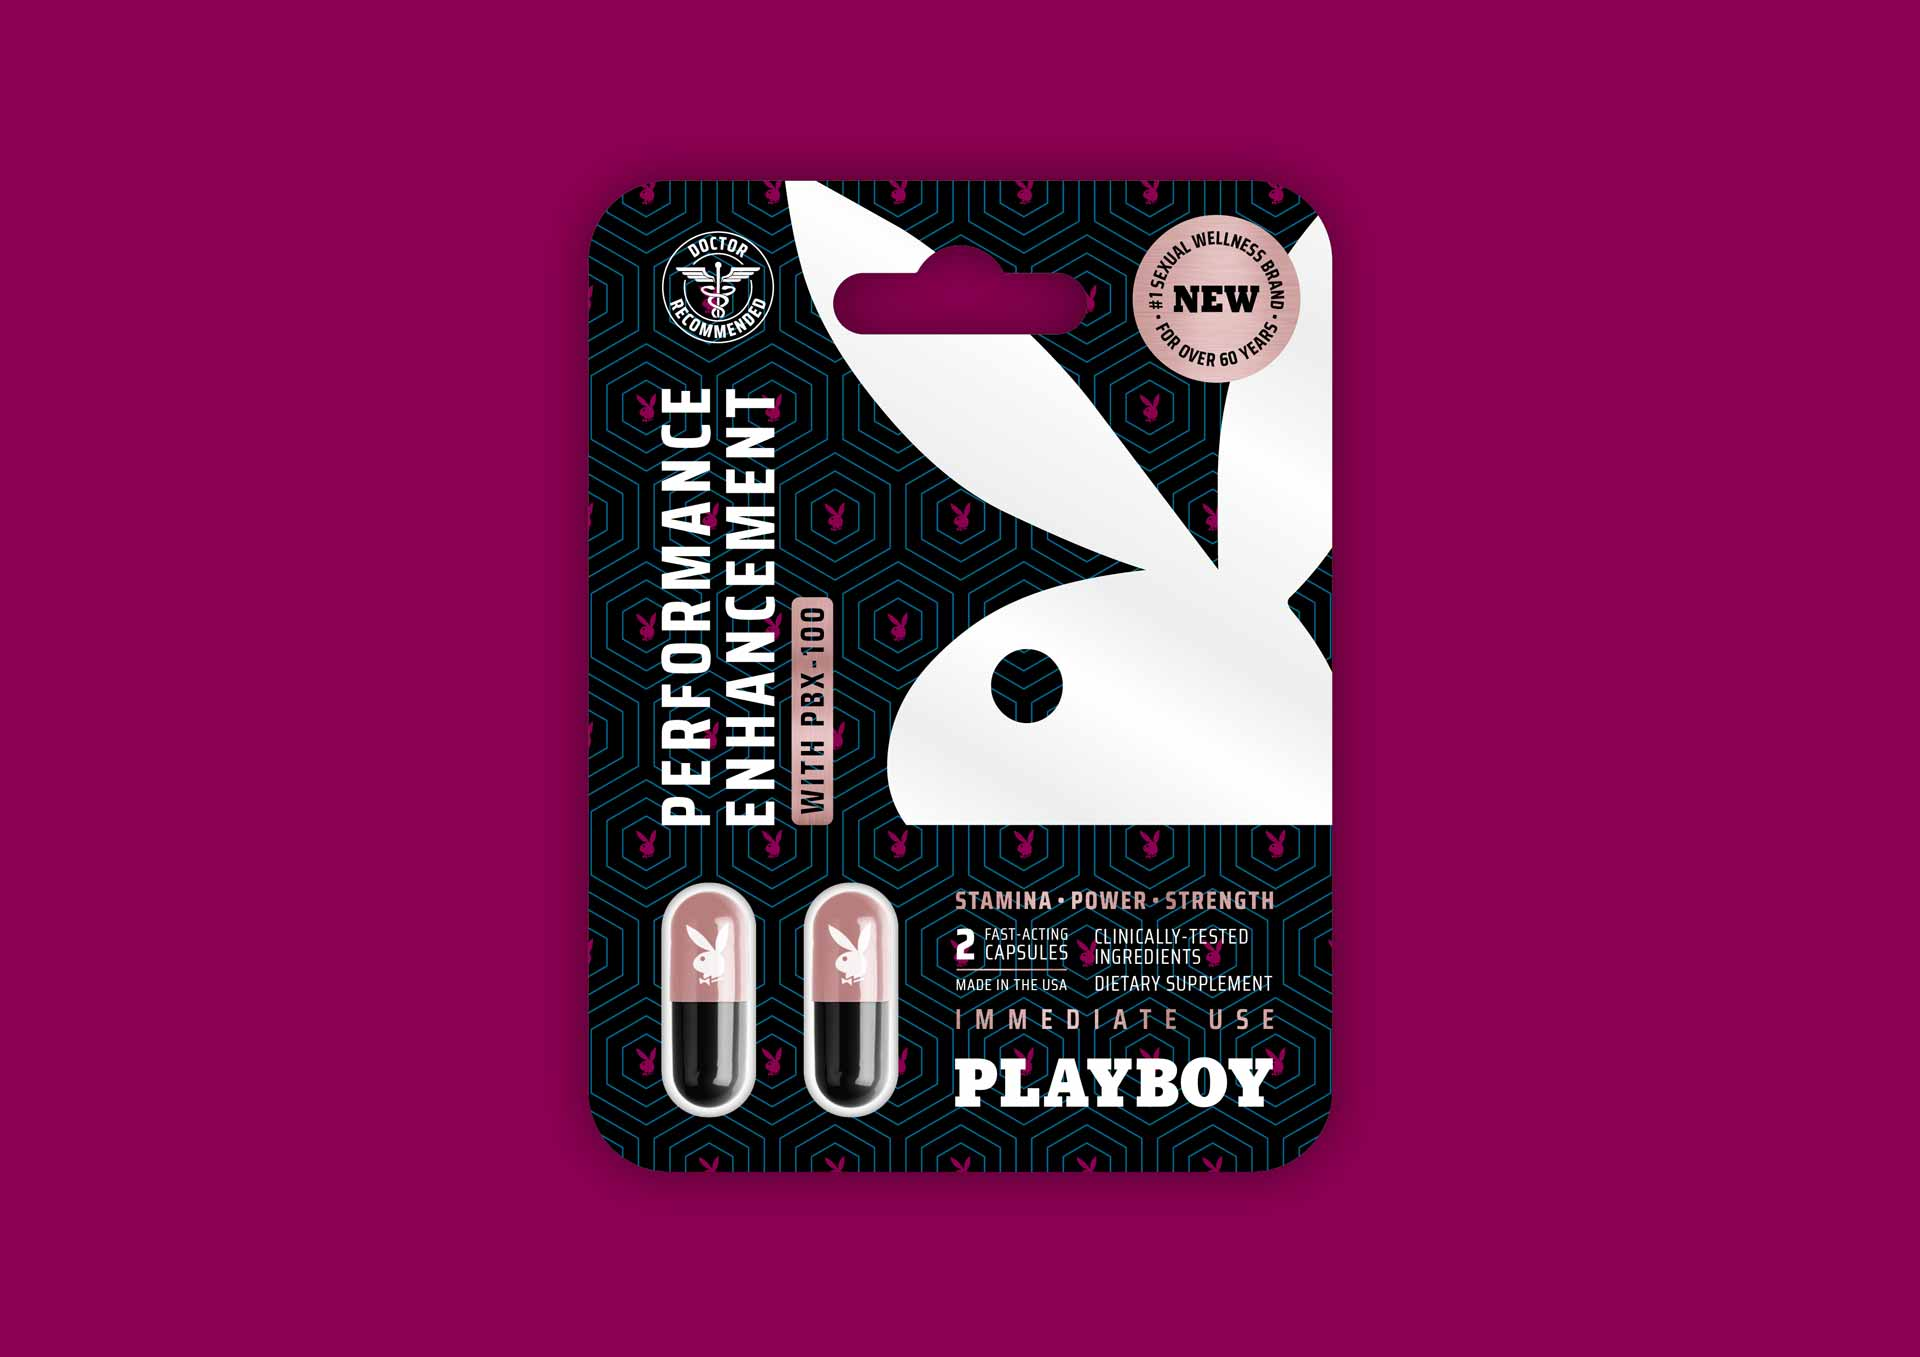 playboy-packaging-9